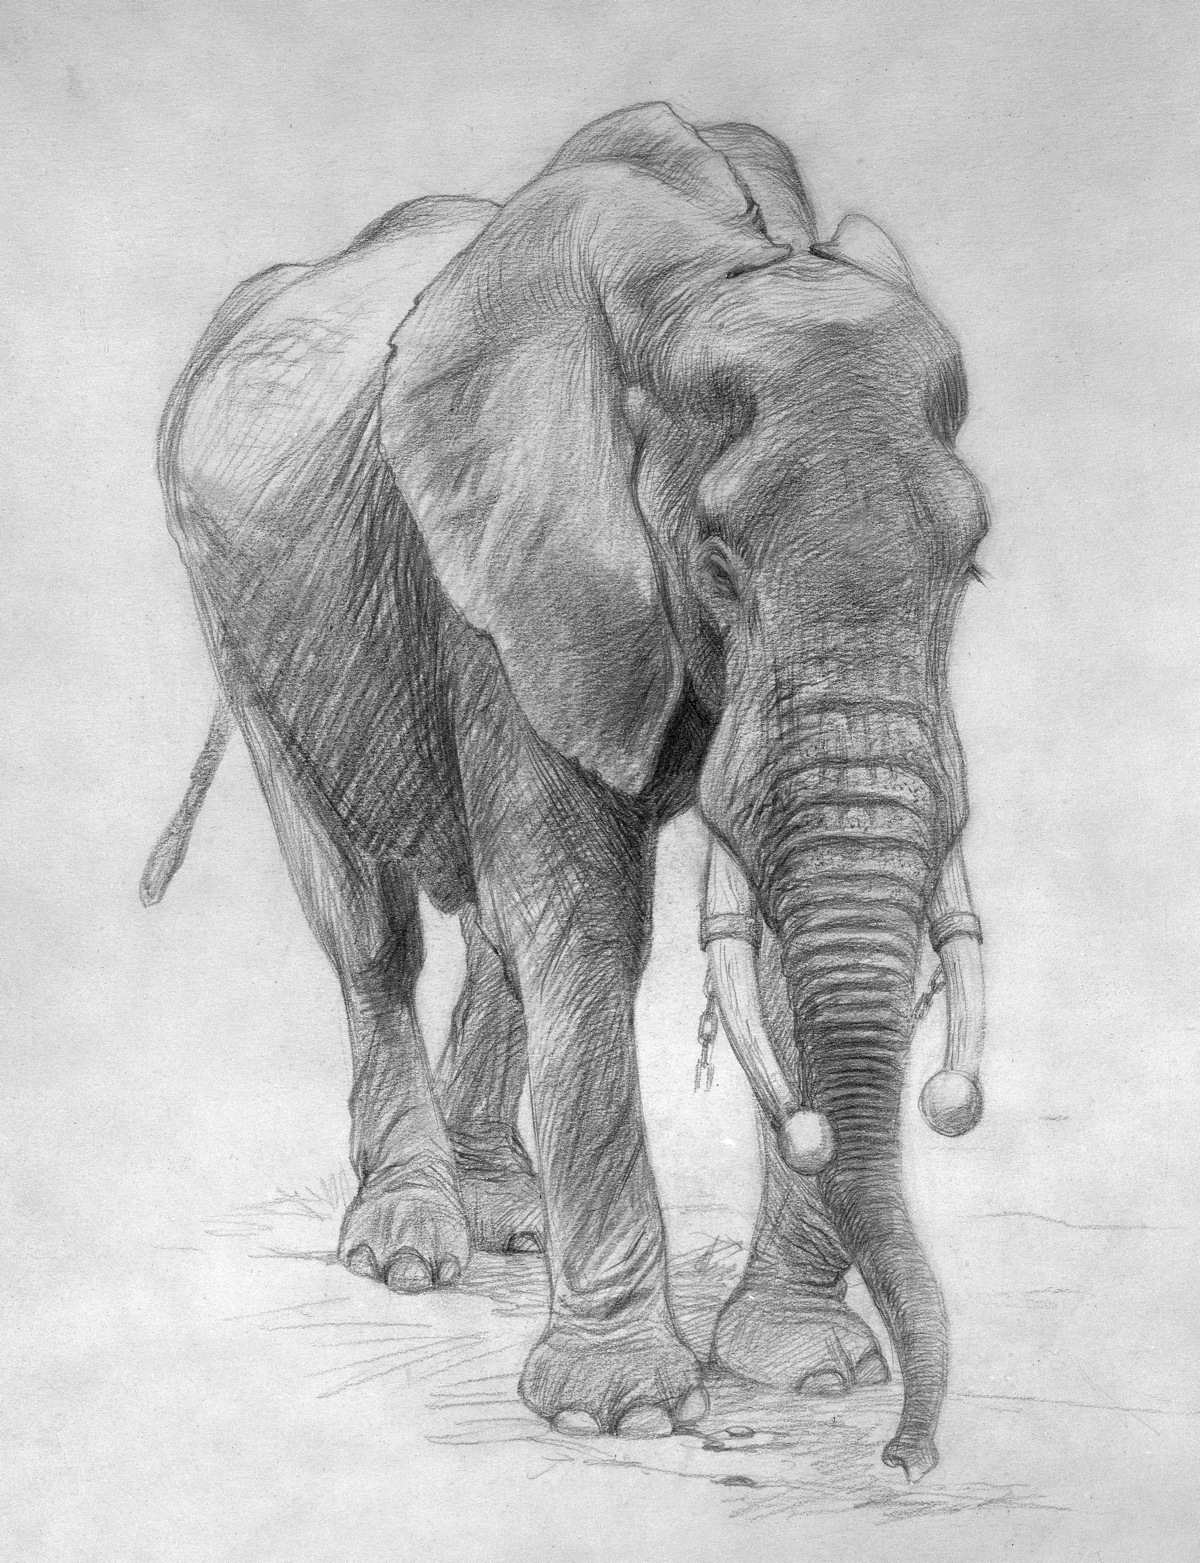 Pencil drawings by famous artists pencil drawings